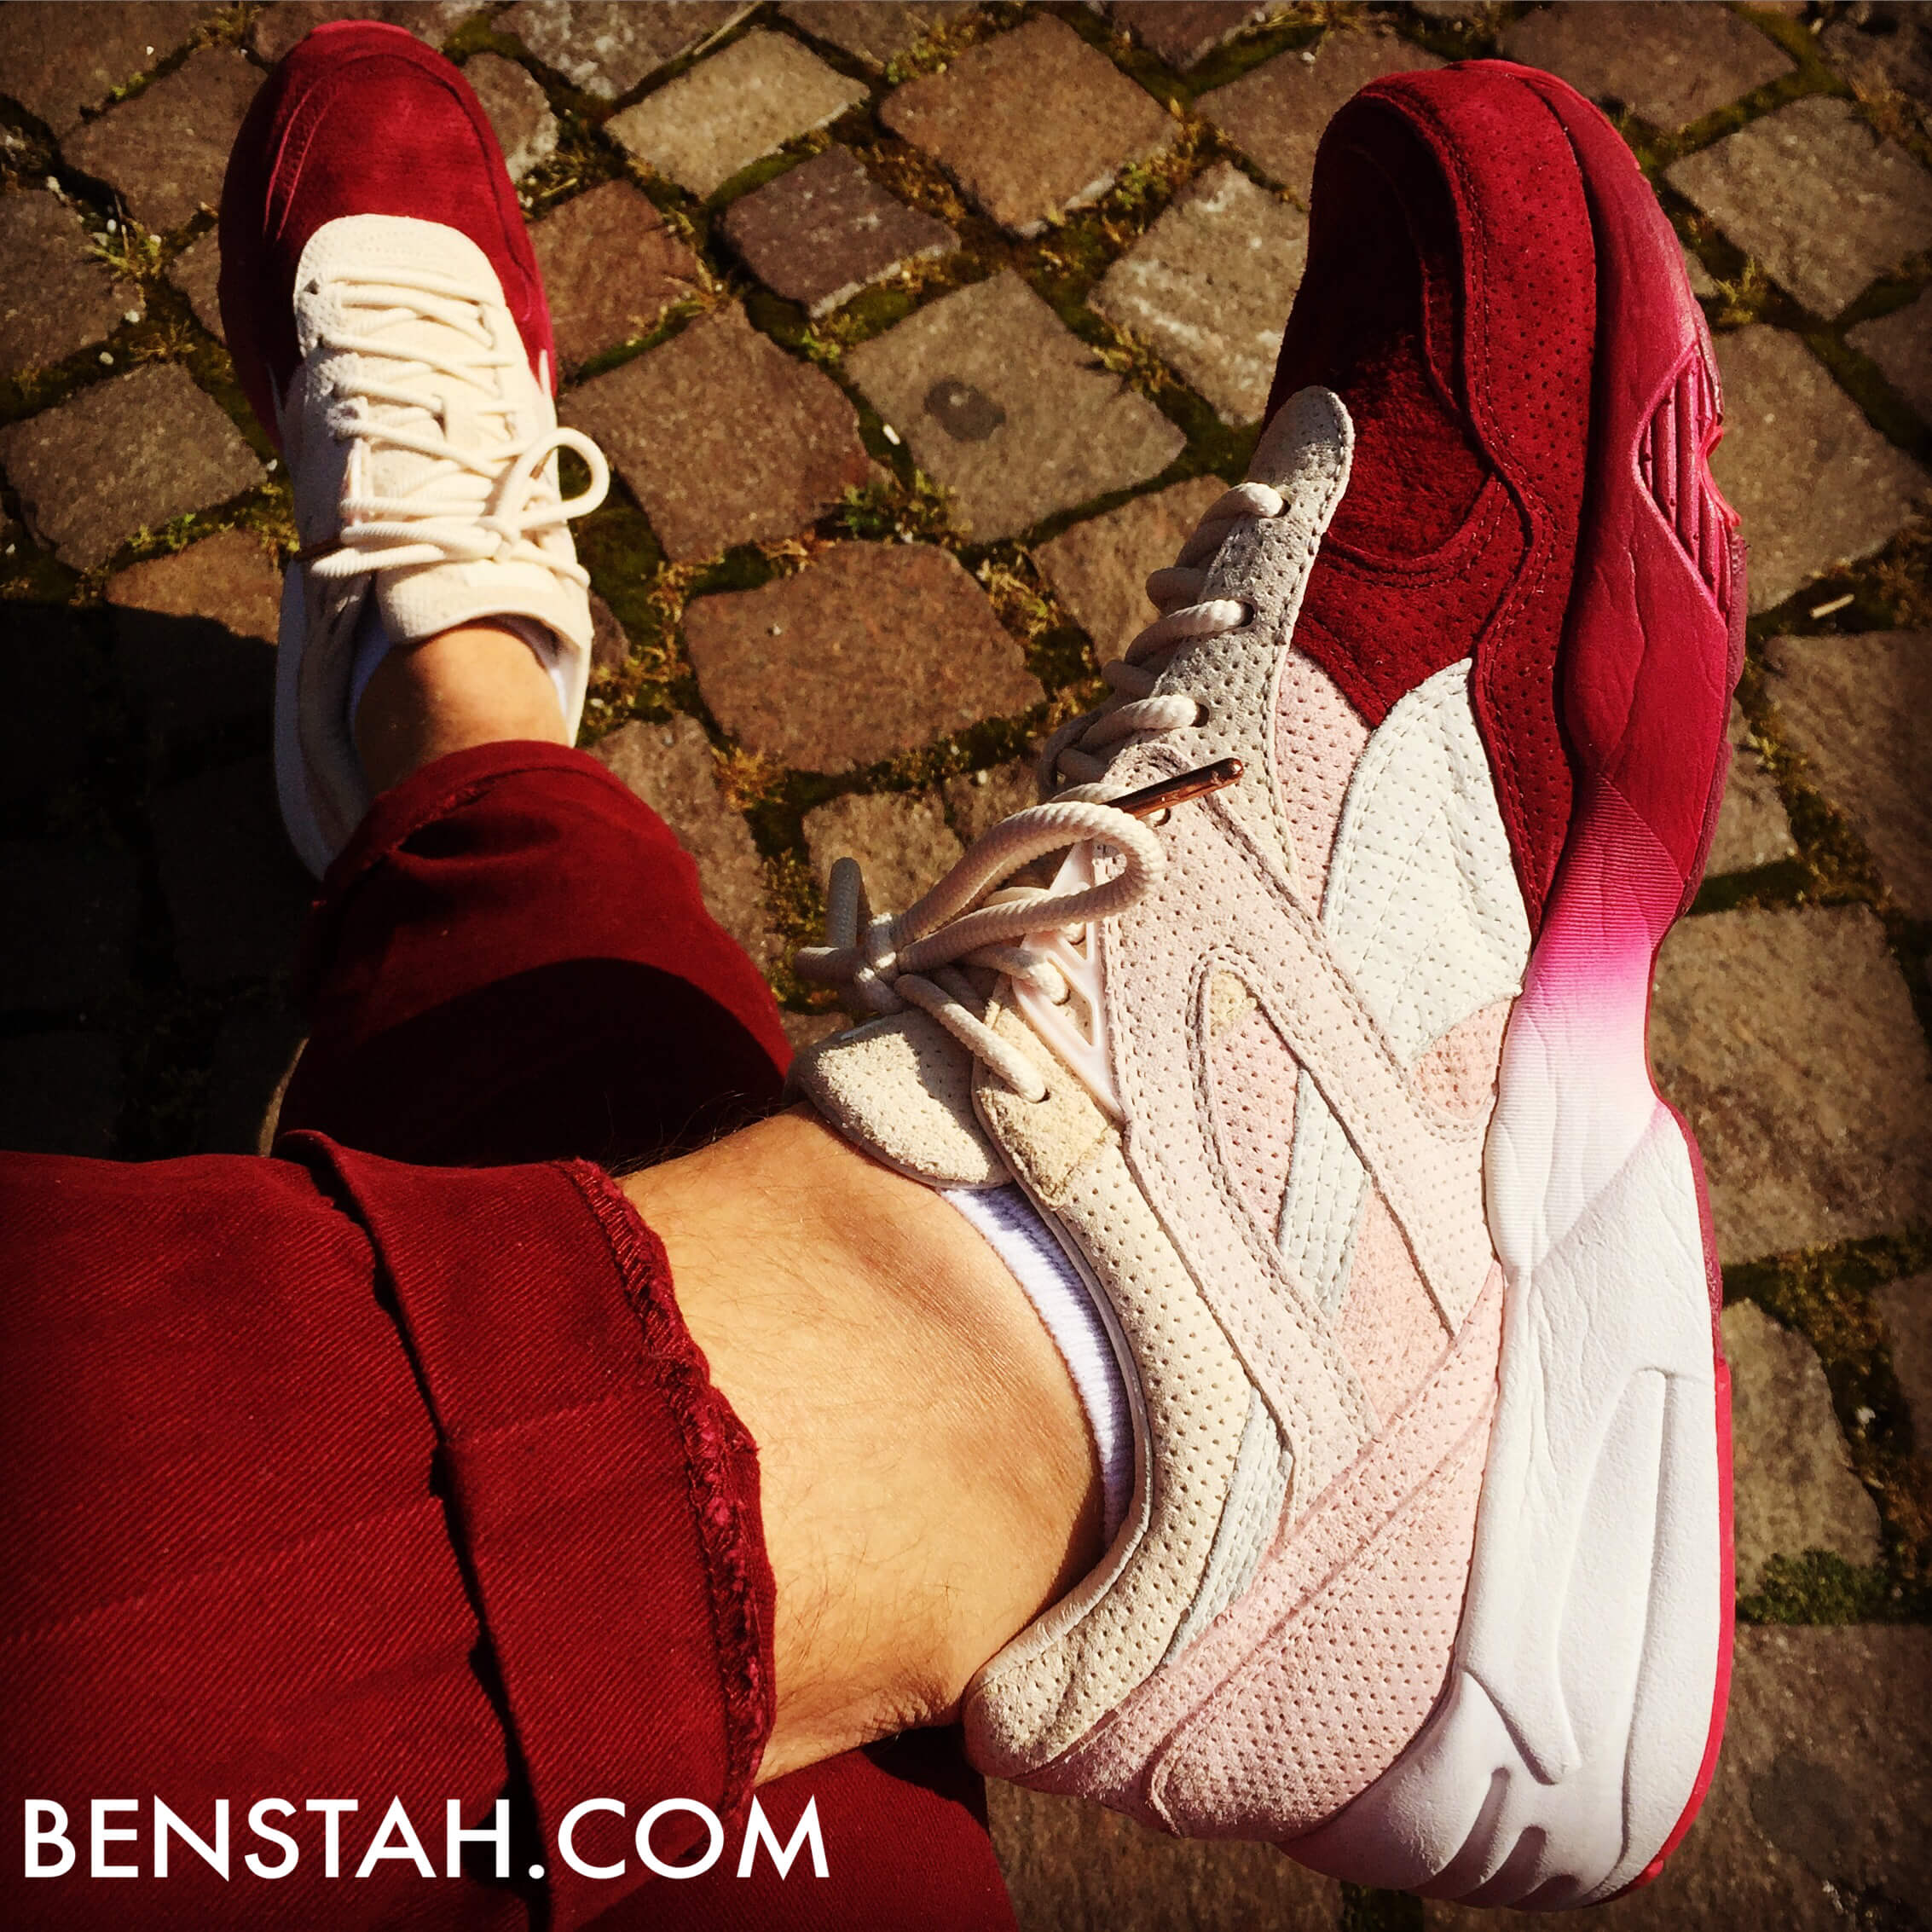 Puma-Ronnie-Fieg-x-R698-Sakura-Project-Top-View-Benstah-Onfeet